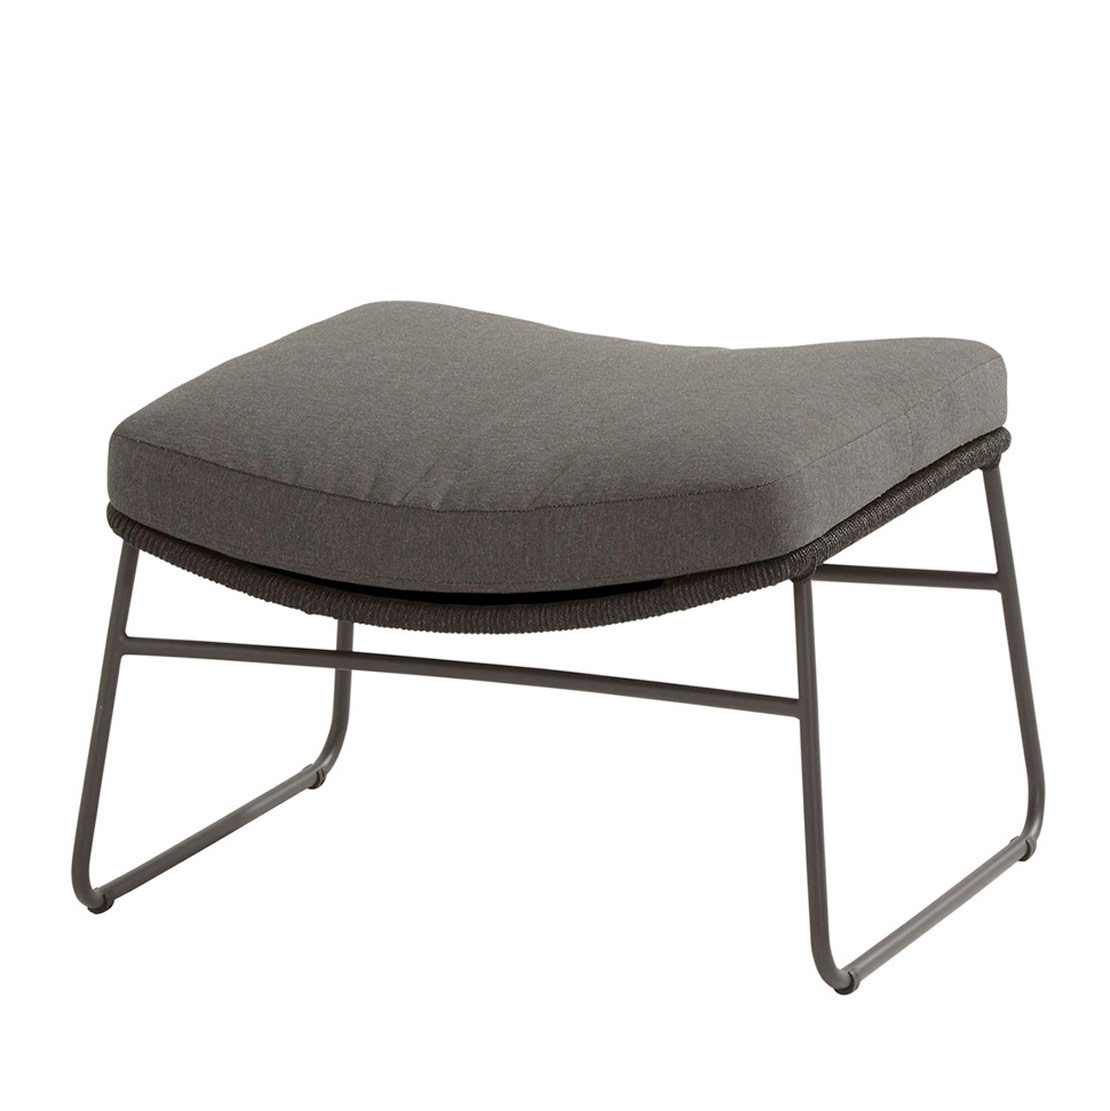 Accor footstool with cushion